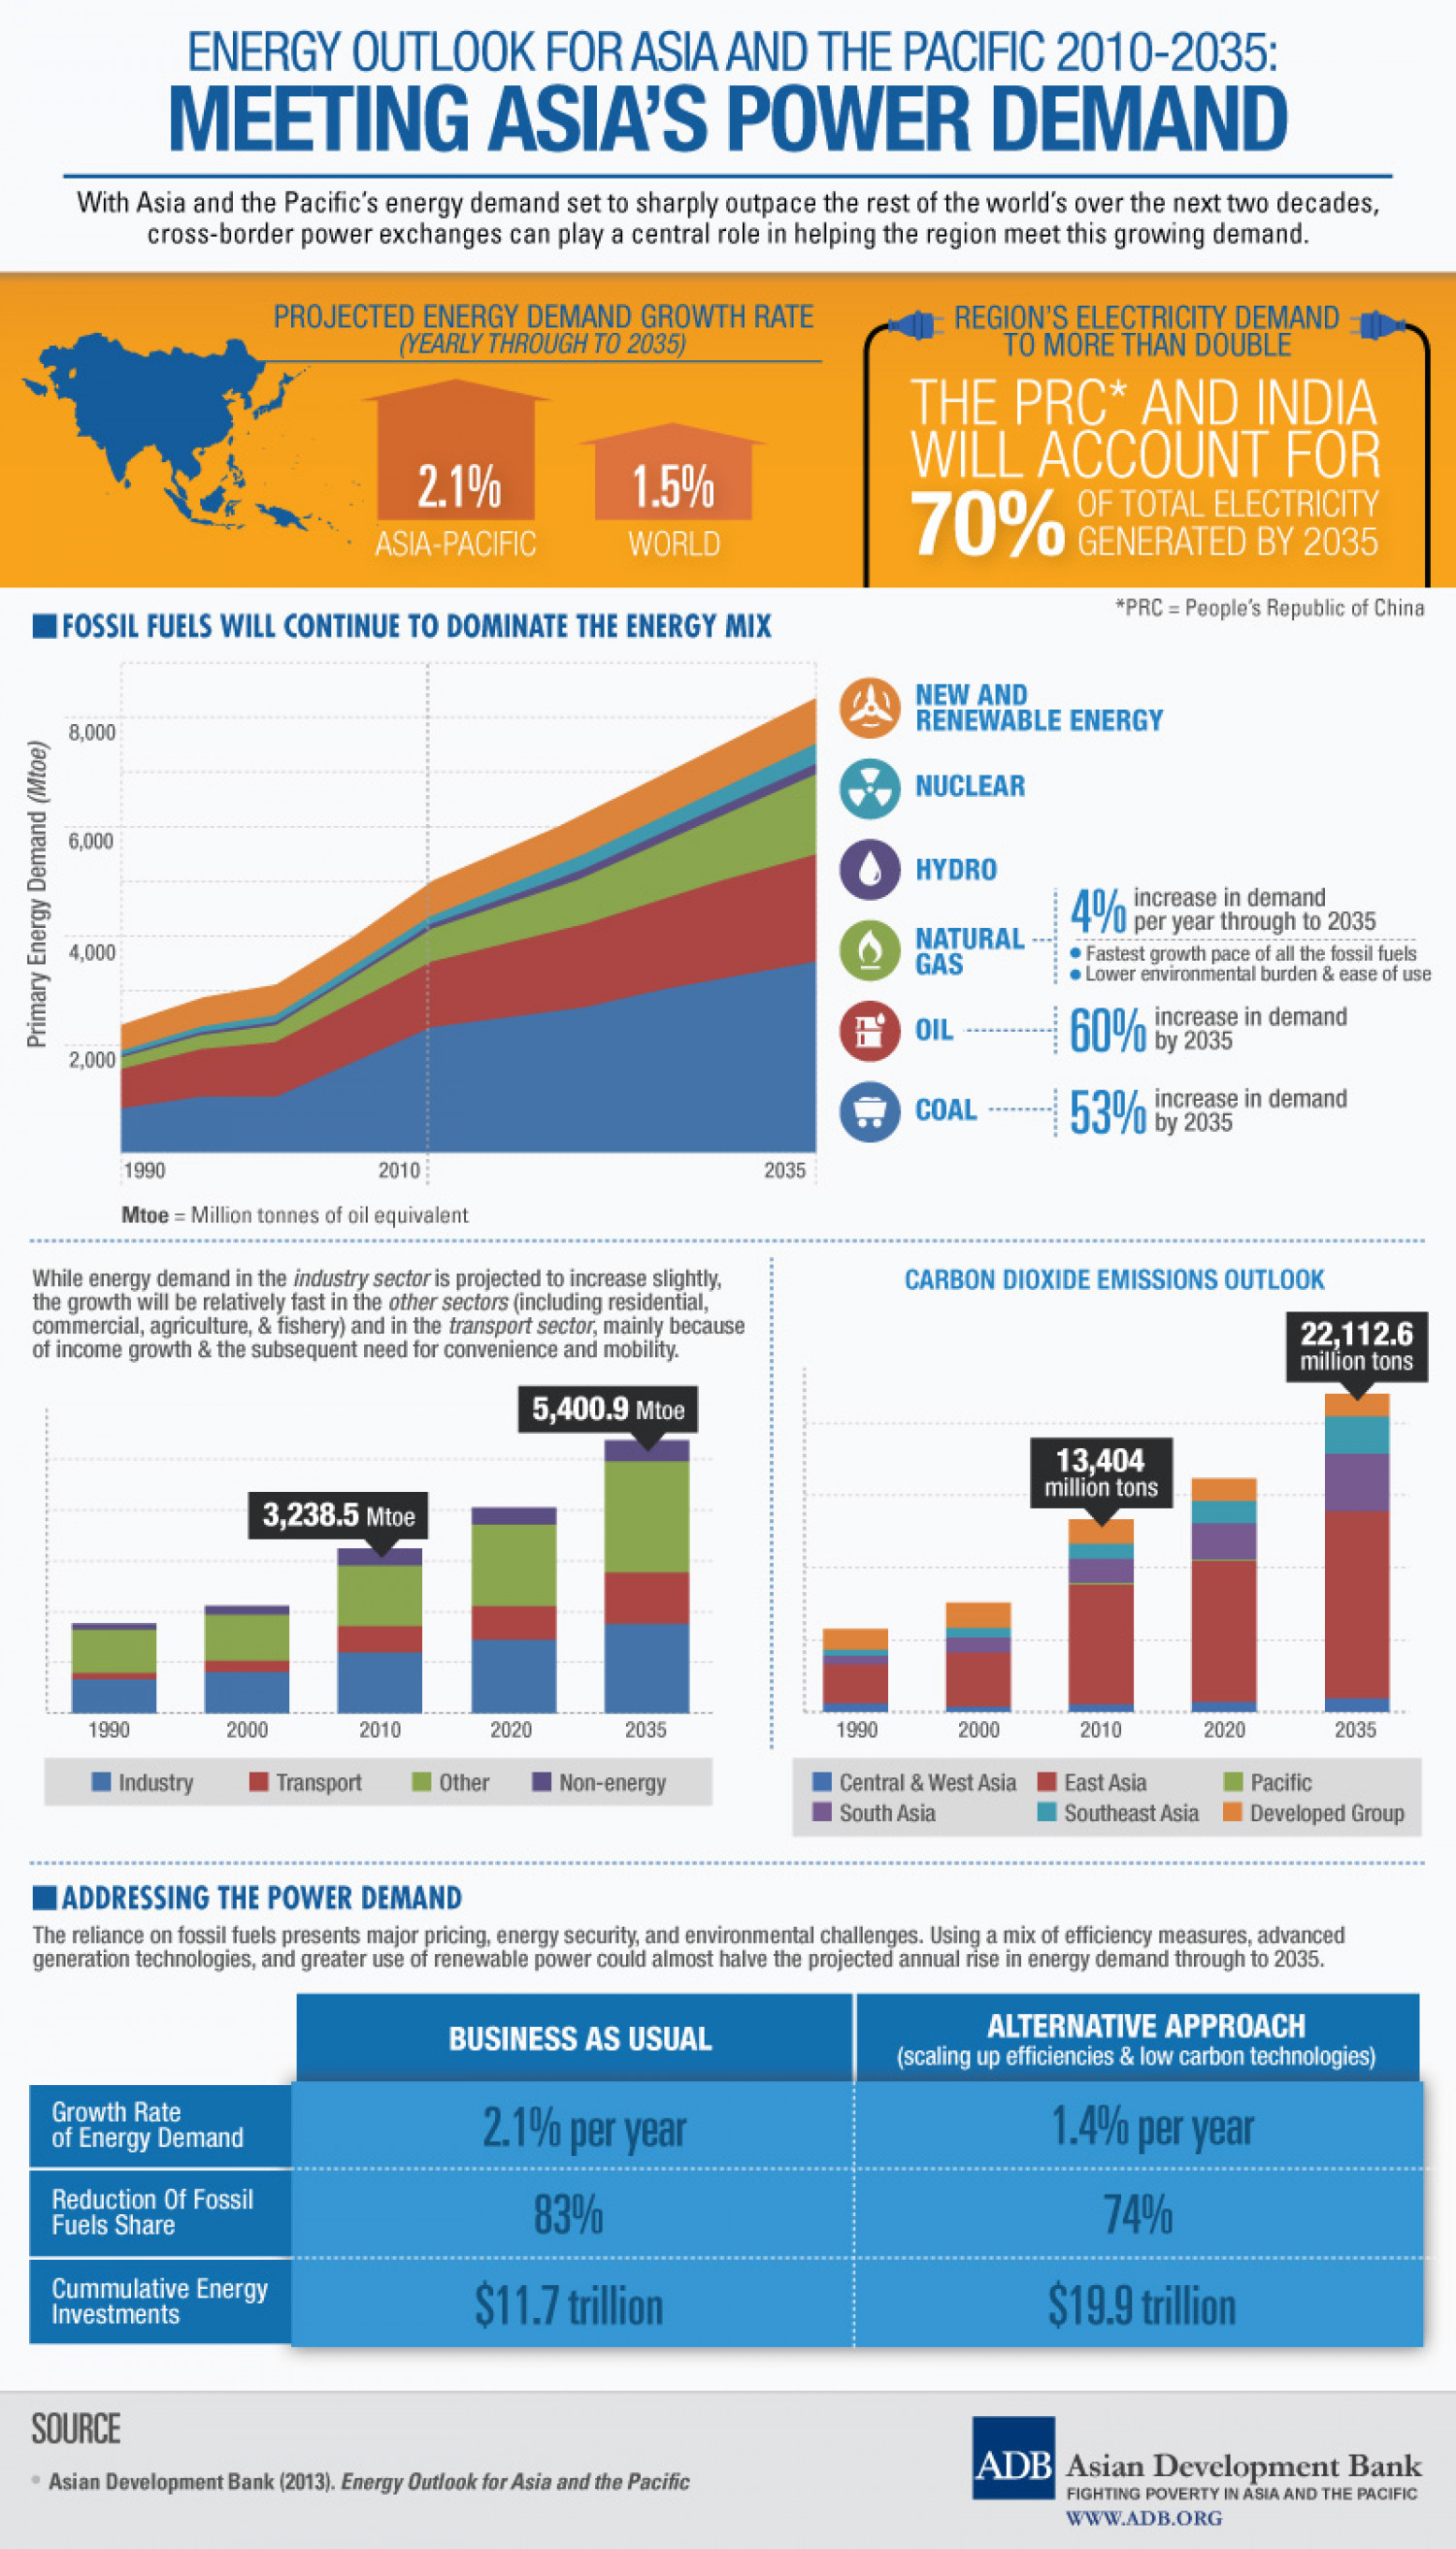 Energy Outlook for Asia and the Pacific 2010-2035: Meeting Asia's Power Demand Infographic